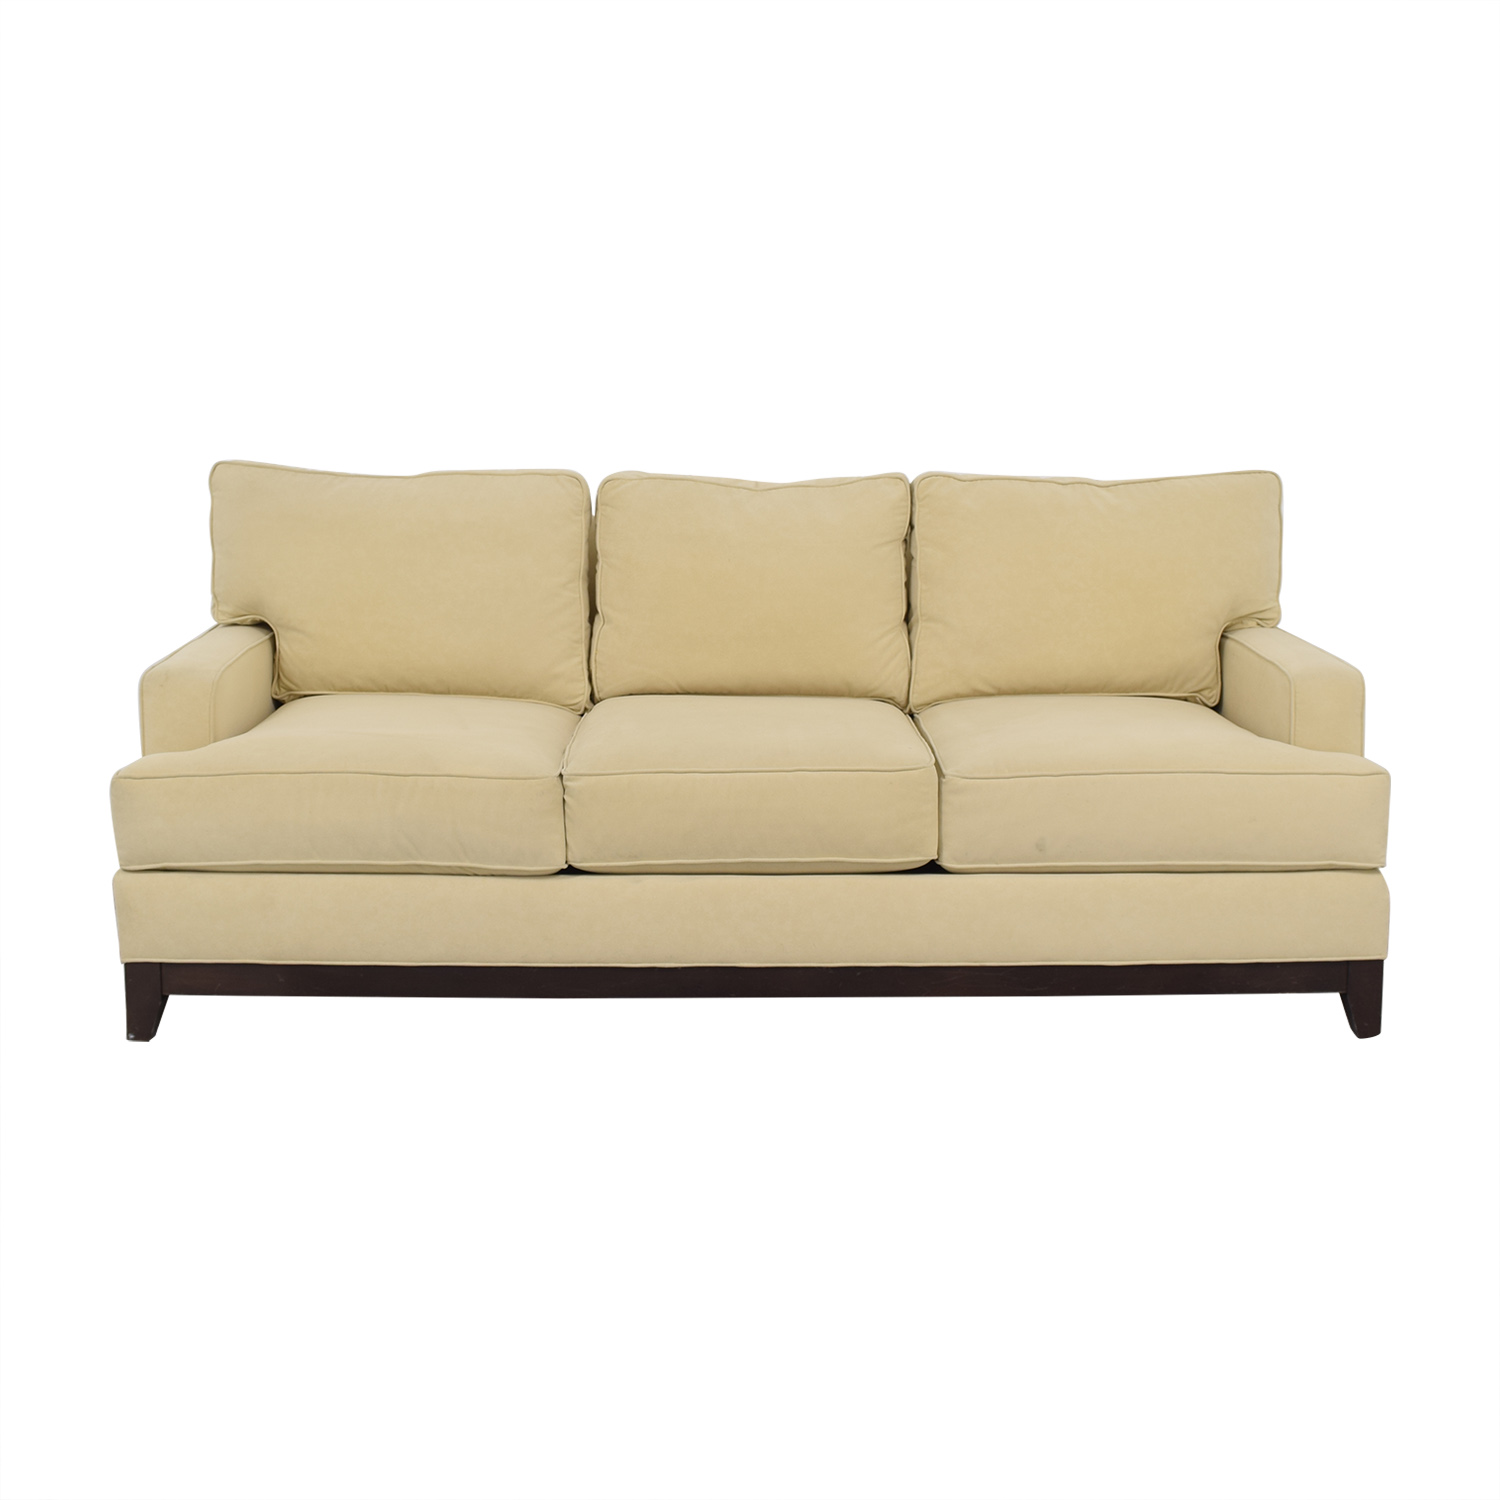 Ethan Allen Three Cushion Sofa / Classic Sofas